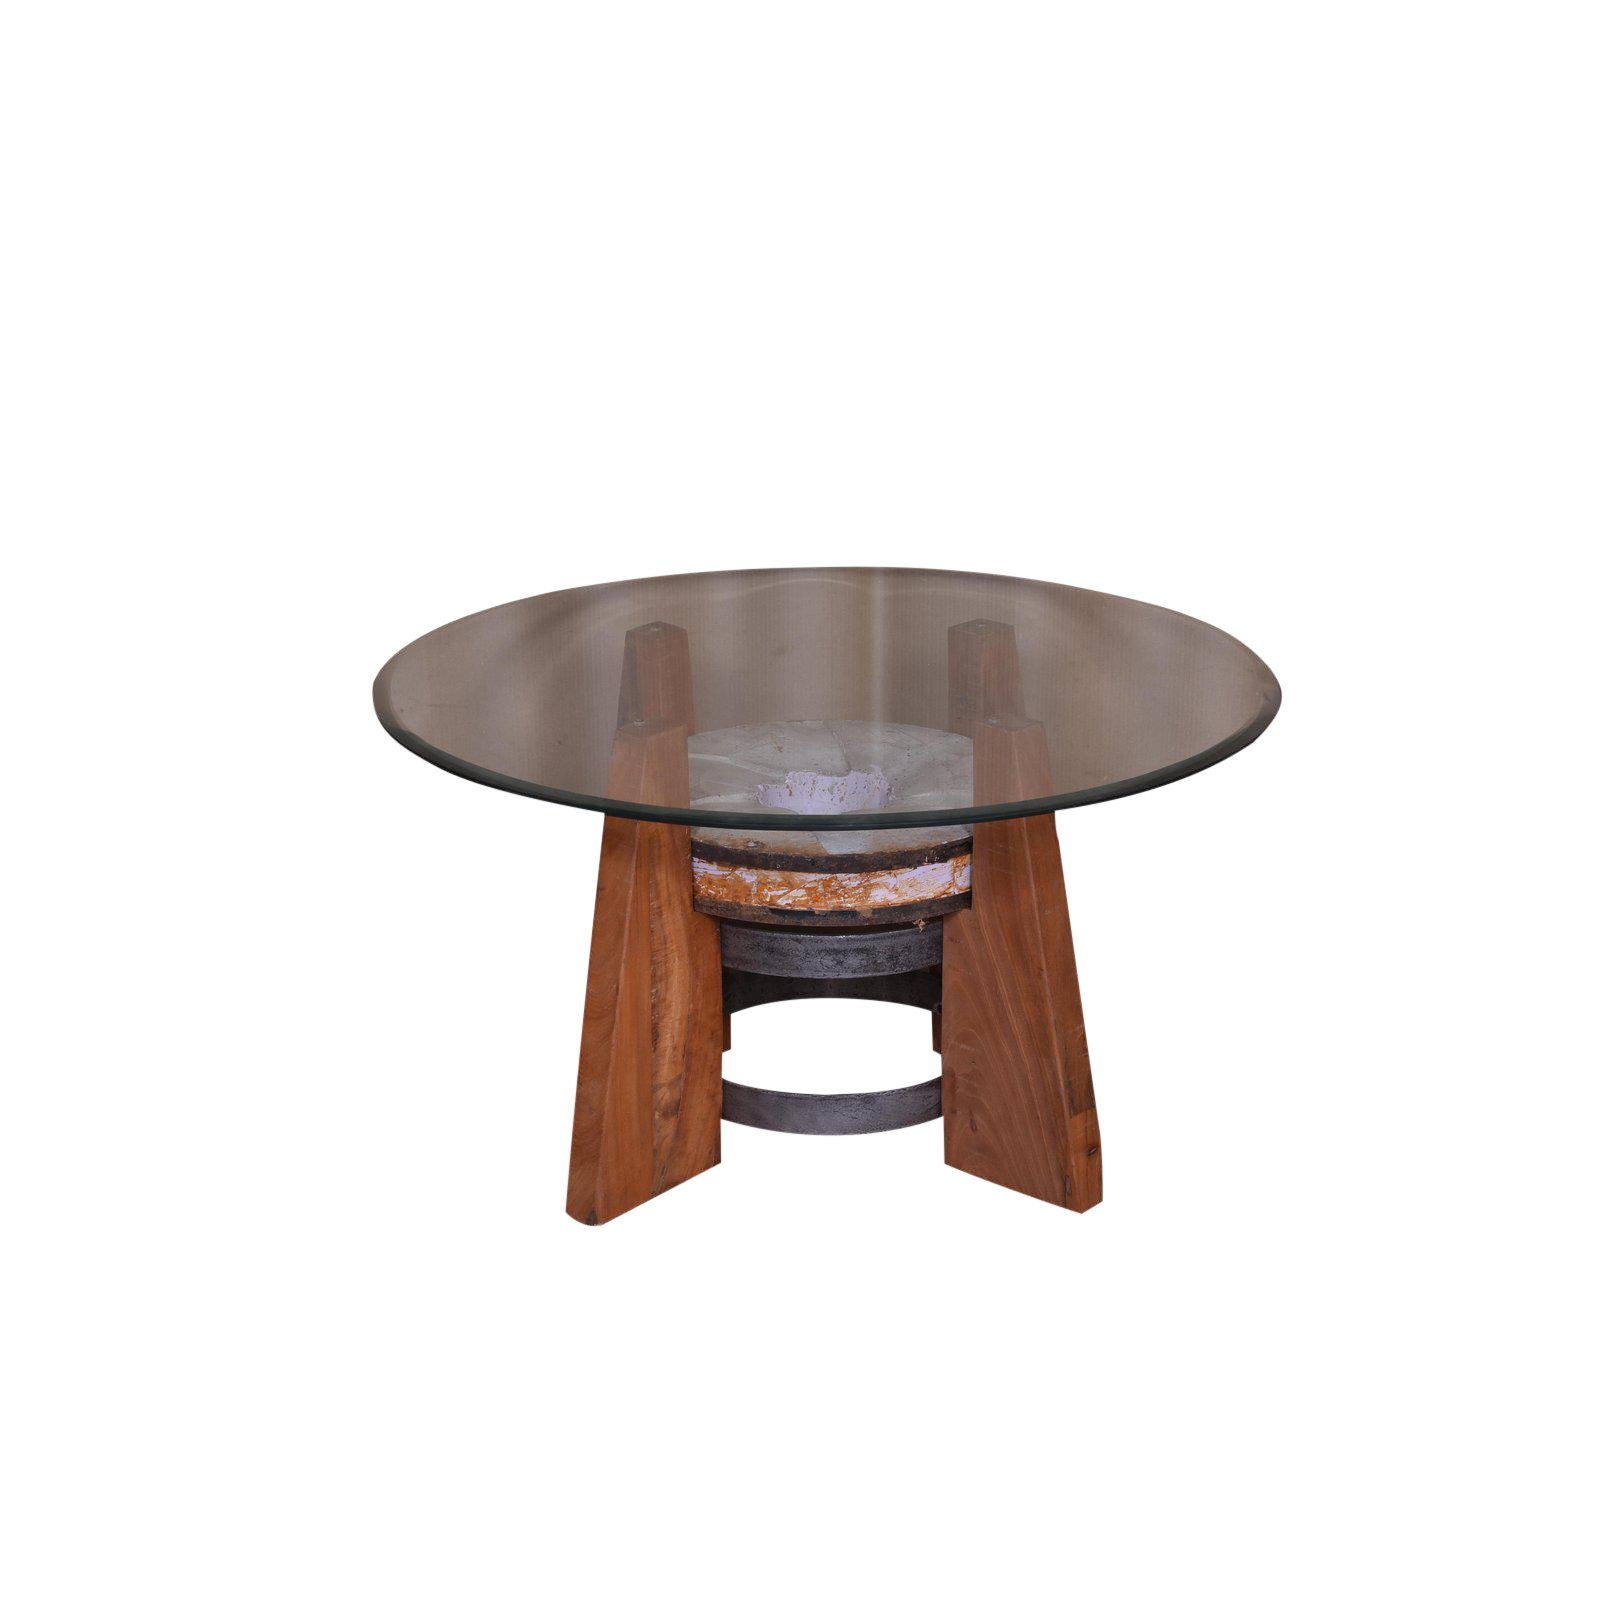 round coffee table with glass top living room wood and wooden accent rustic natural chairish elegant placemats dining furniture catalogue all modern end tables little for corner